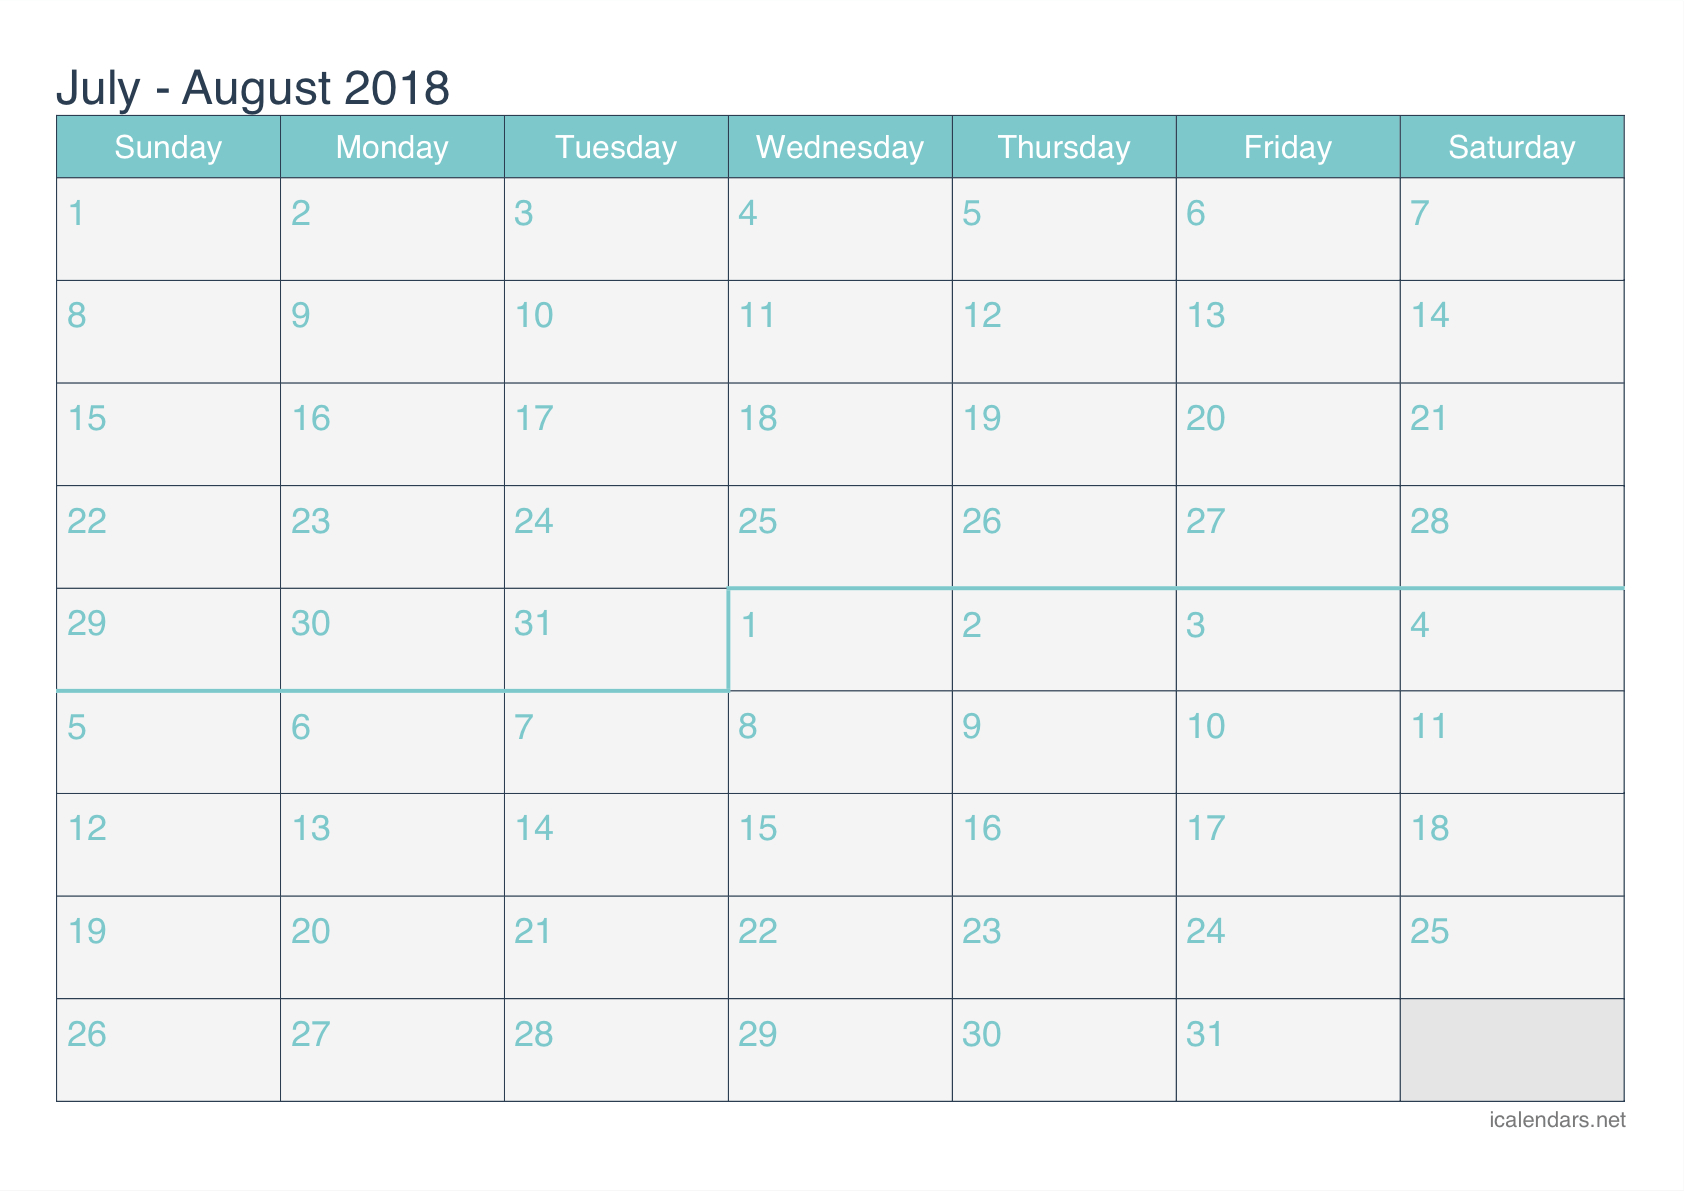 July And August 2018 Printable Calendar - Icalendars intended for Printable Blank Calendar July And August